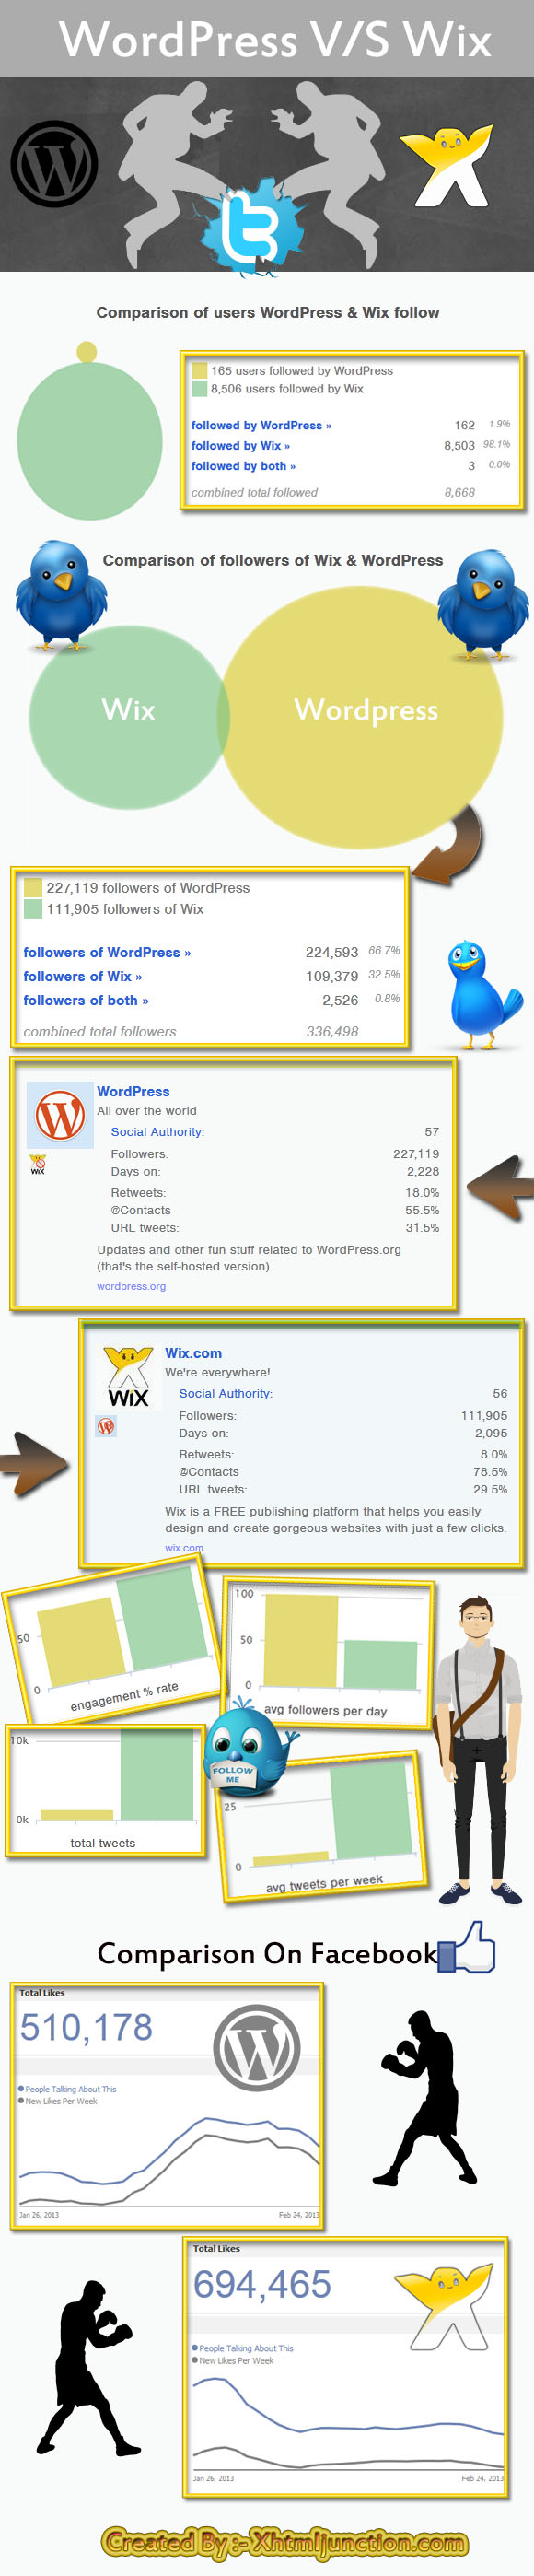 wordpress-vs-wix Infographic